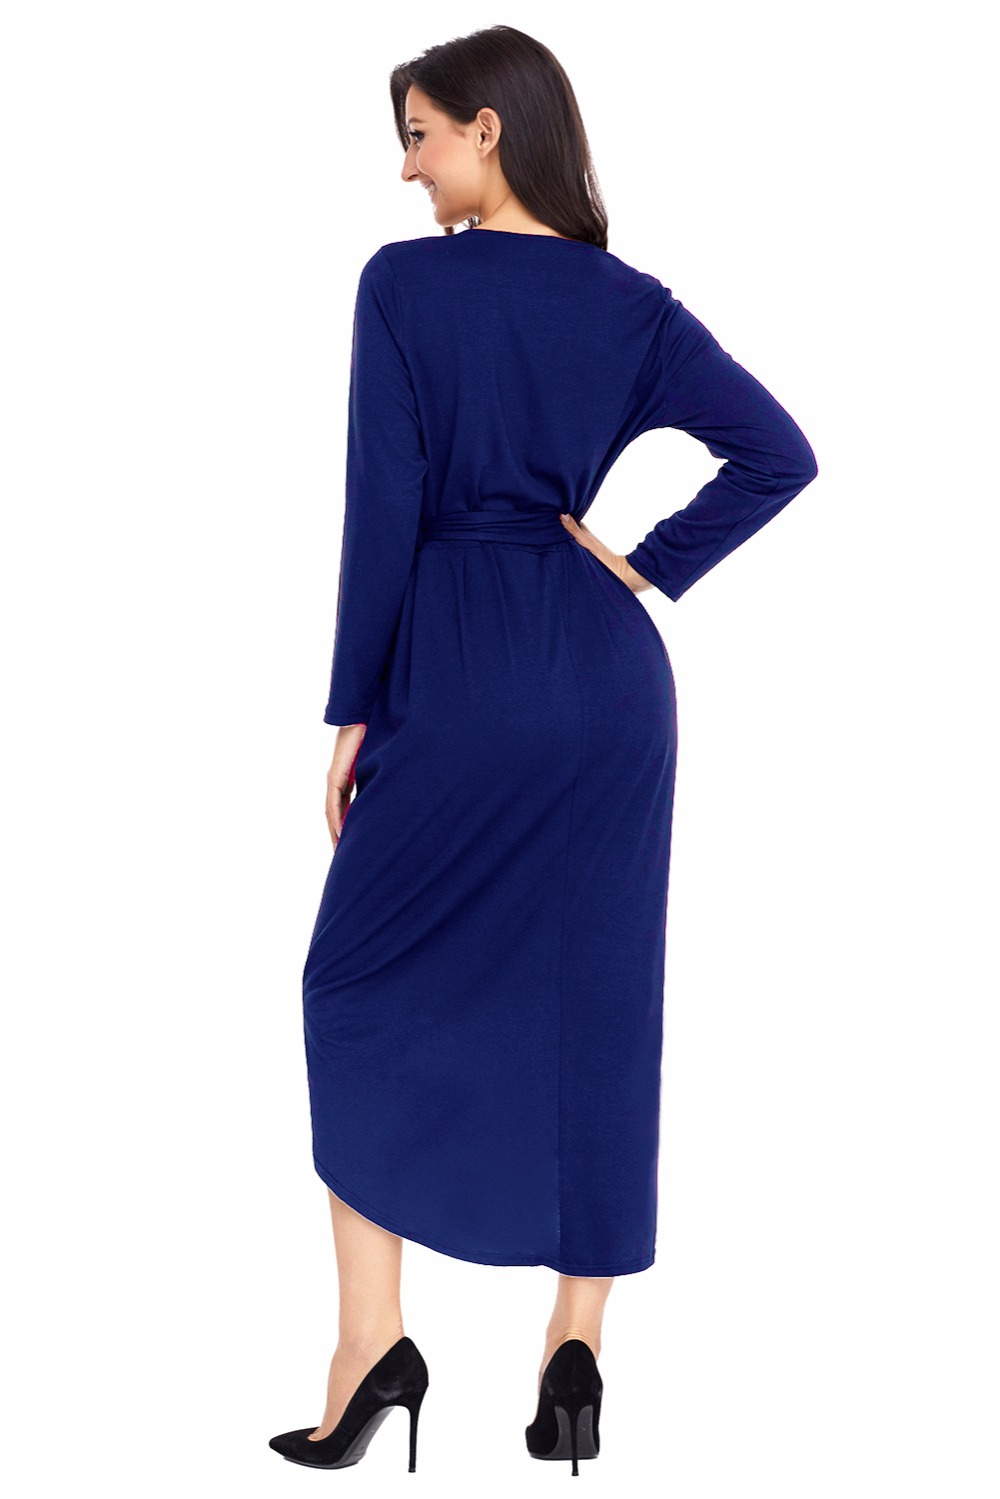 Autumn Plus Size S 2XL Dresses Women Office Navy Long Sleeve Tulip Faux  Wrap Sash Tie Slit Jersey Dresses Casual Vestidos Mujer-in Dresses from  Women s ... b9bf80c6a6ae